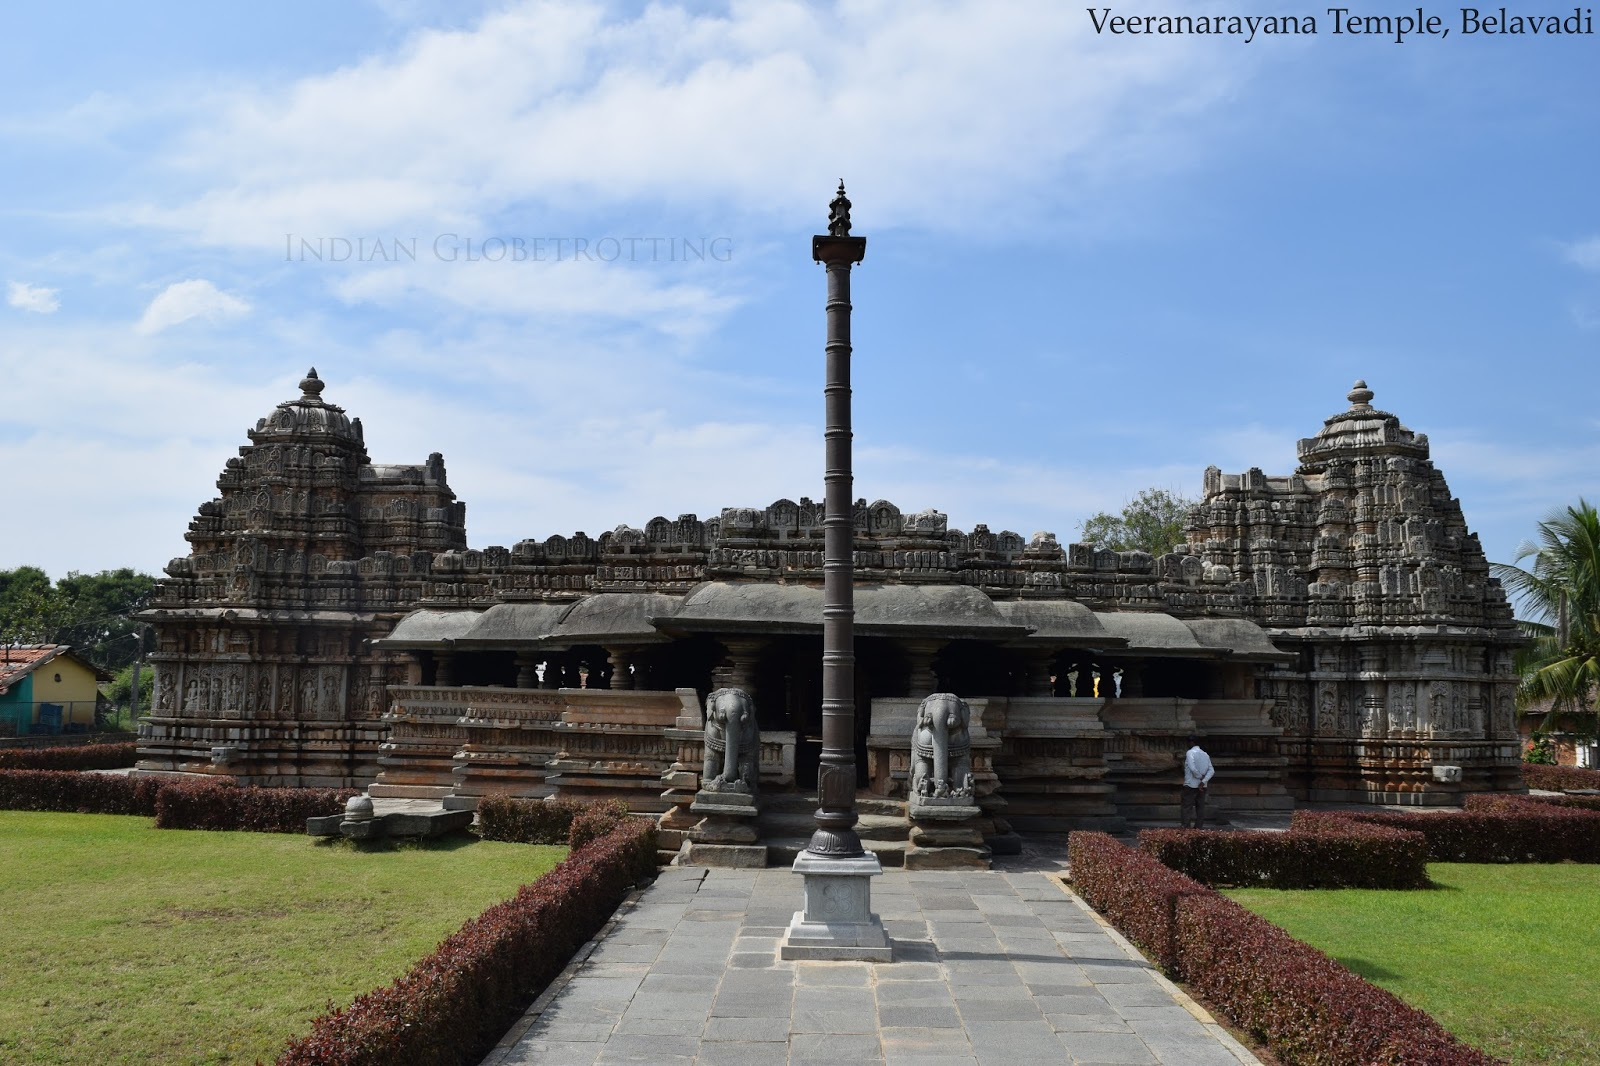 Belavadi Veera Narayana Temple is one of the lesser known Hoysala temple